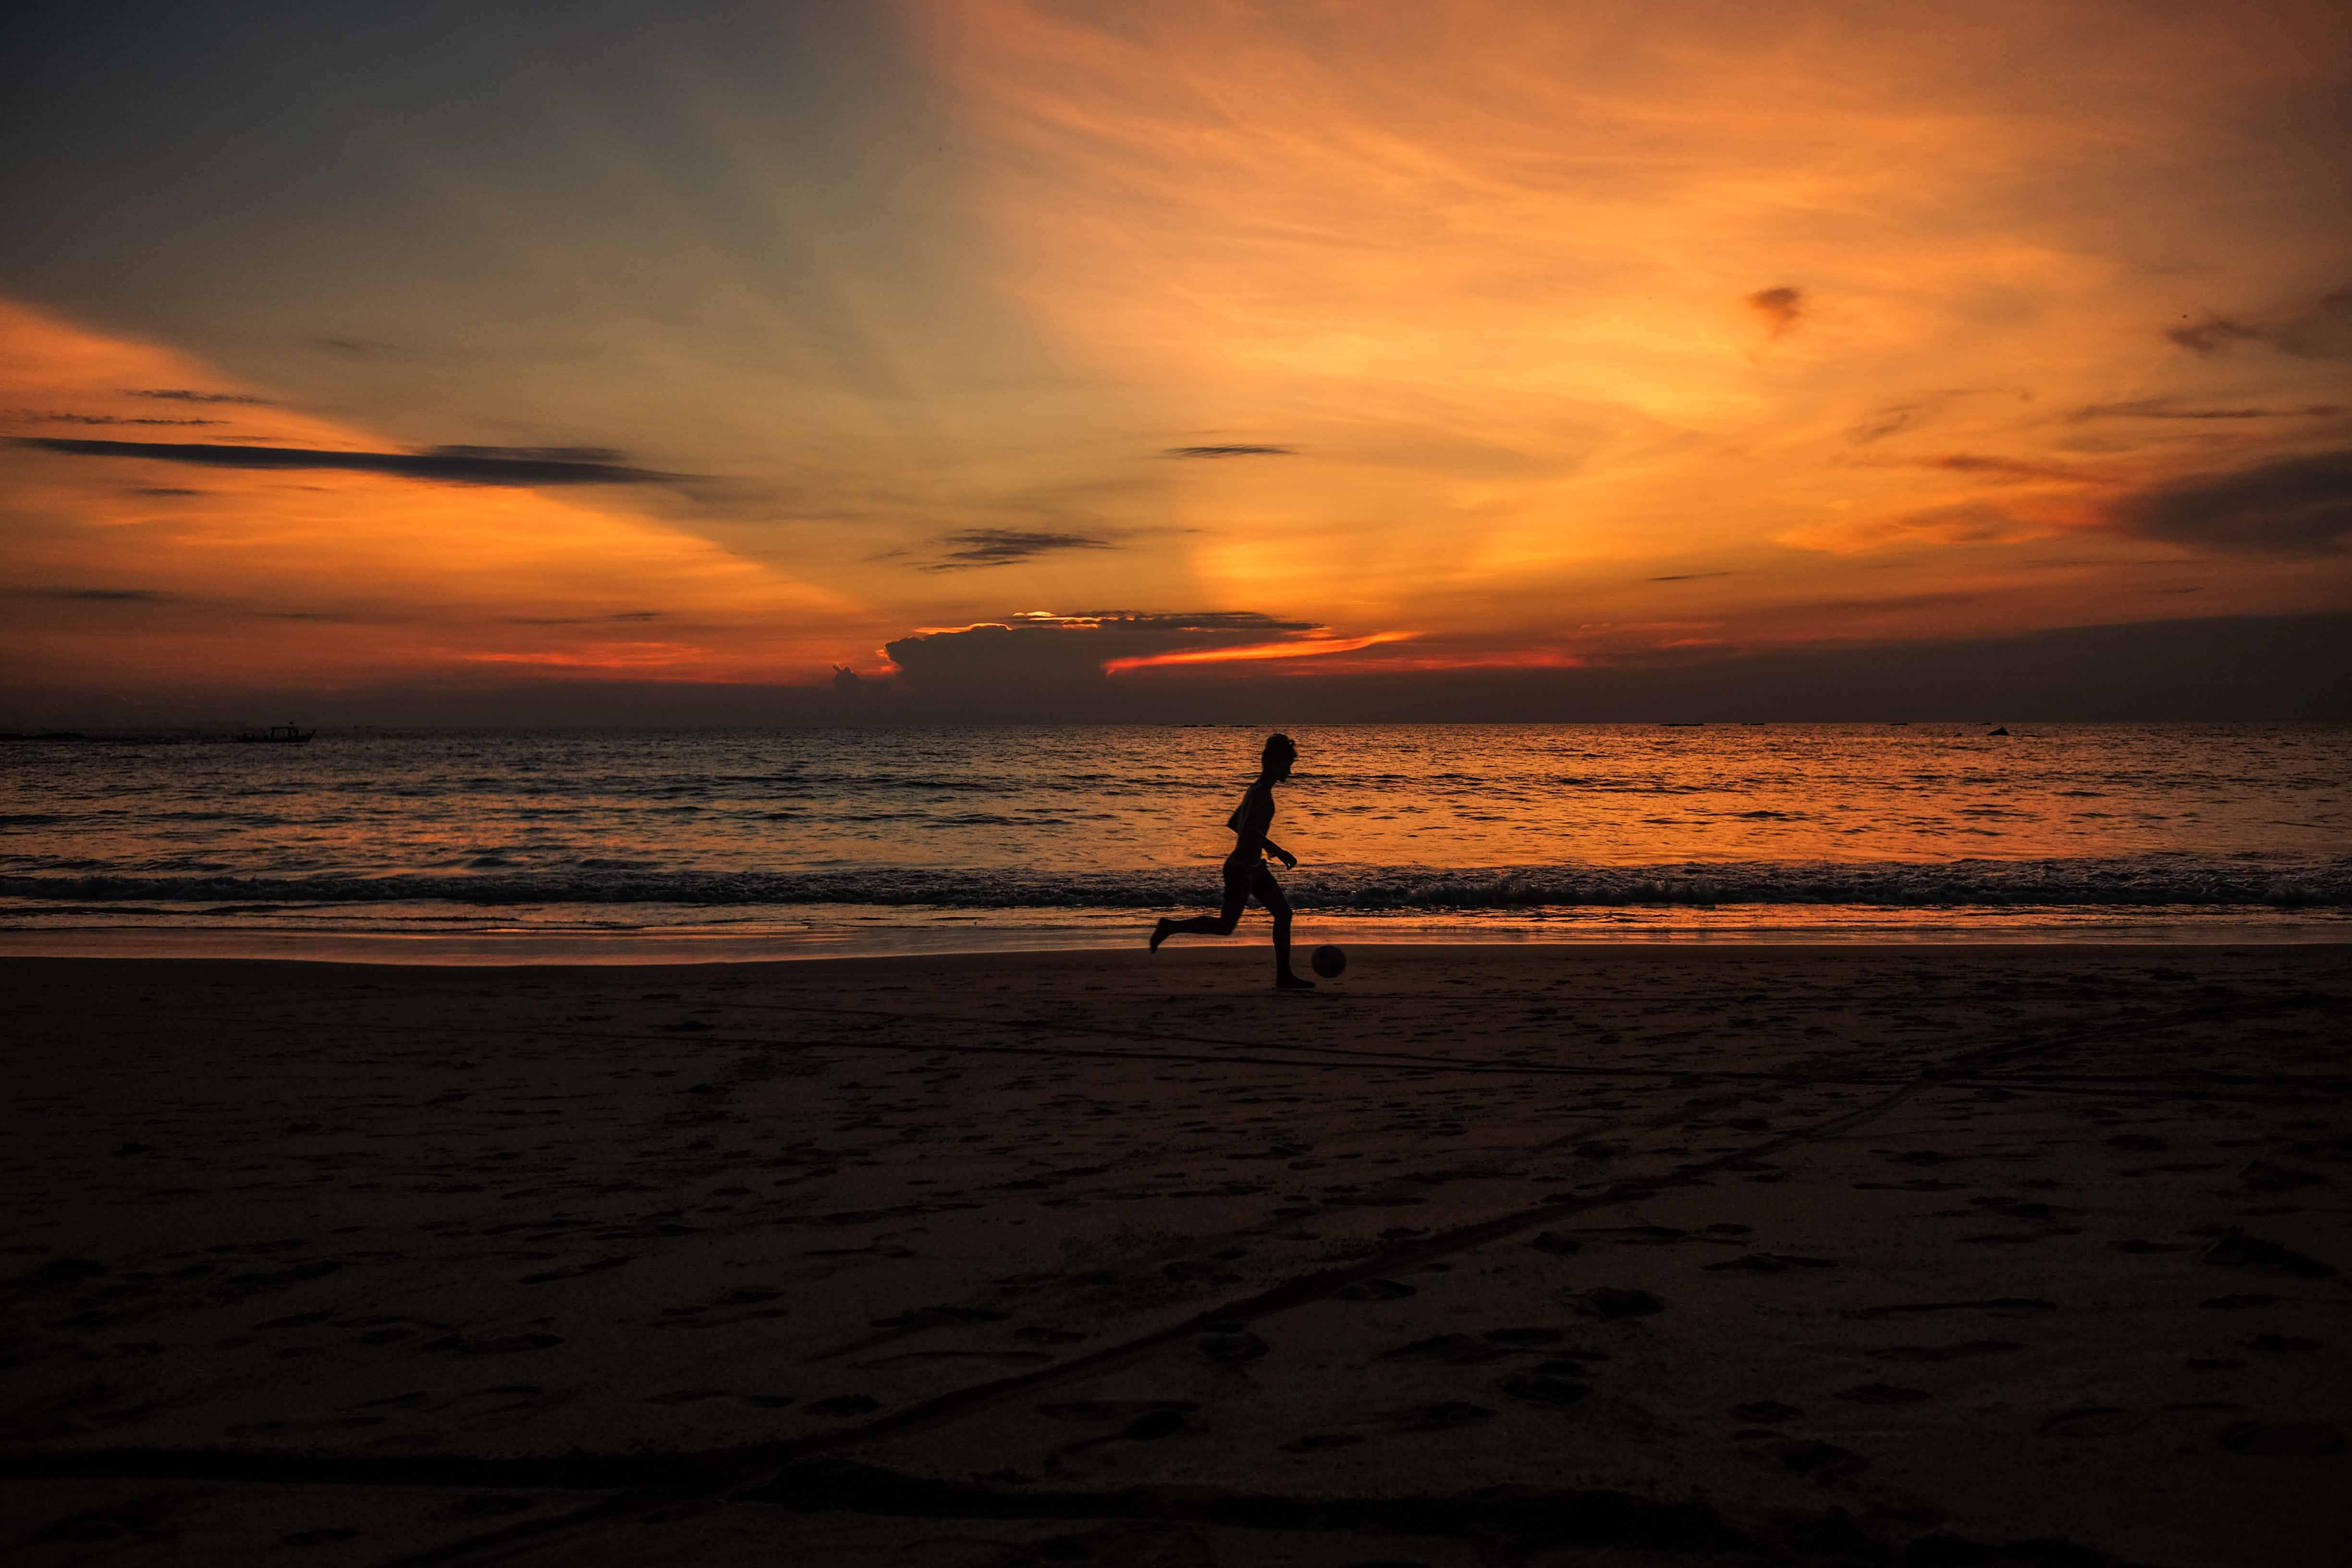 silhouette photo of person running near the shore